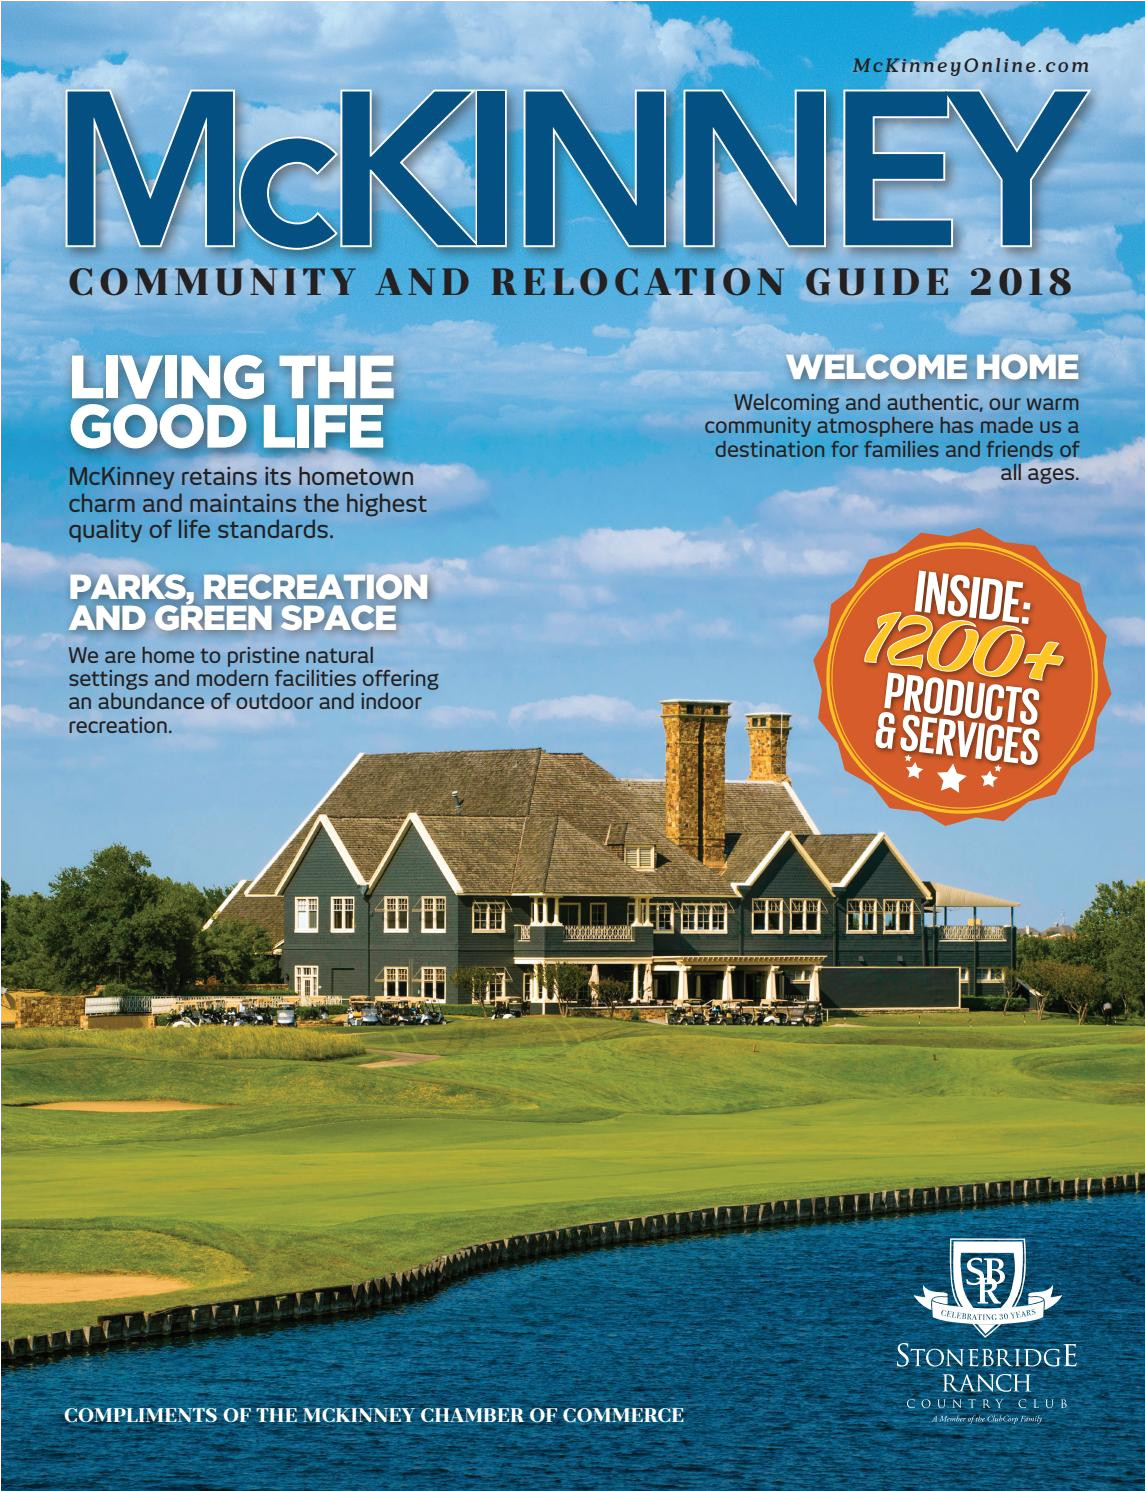 mckinney chamber of commerce community and relocation guide 2018 by chamber marketing partners inc issuu